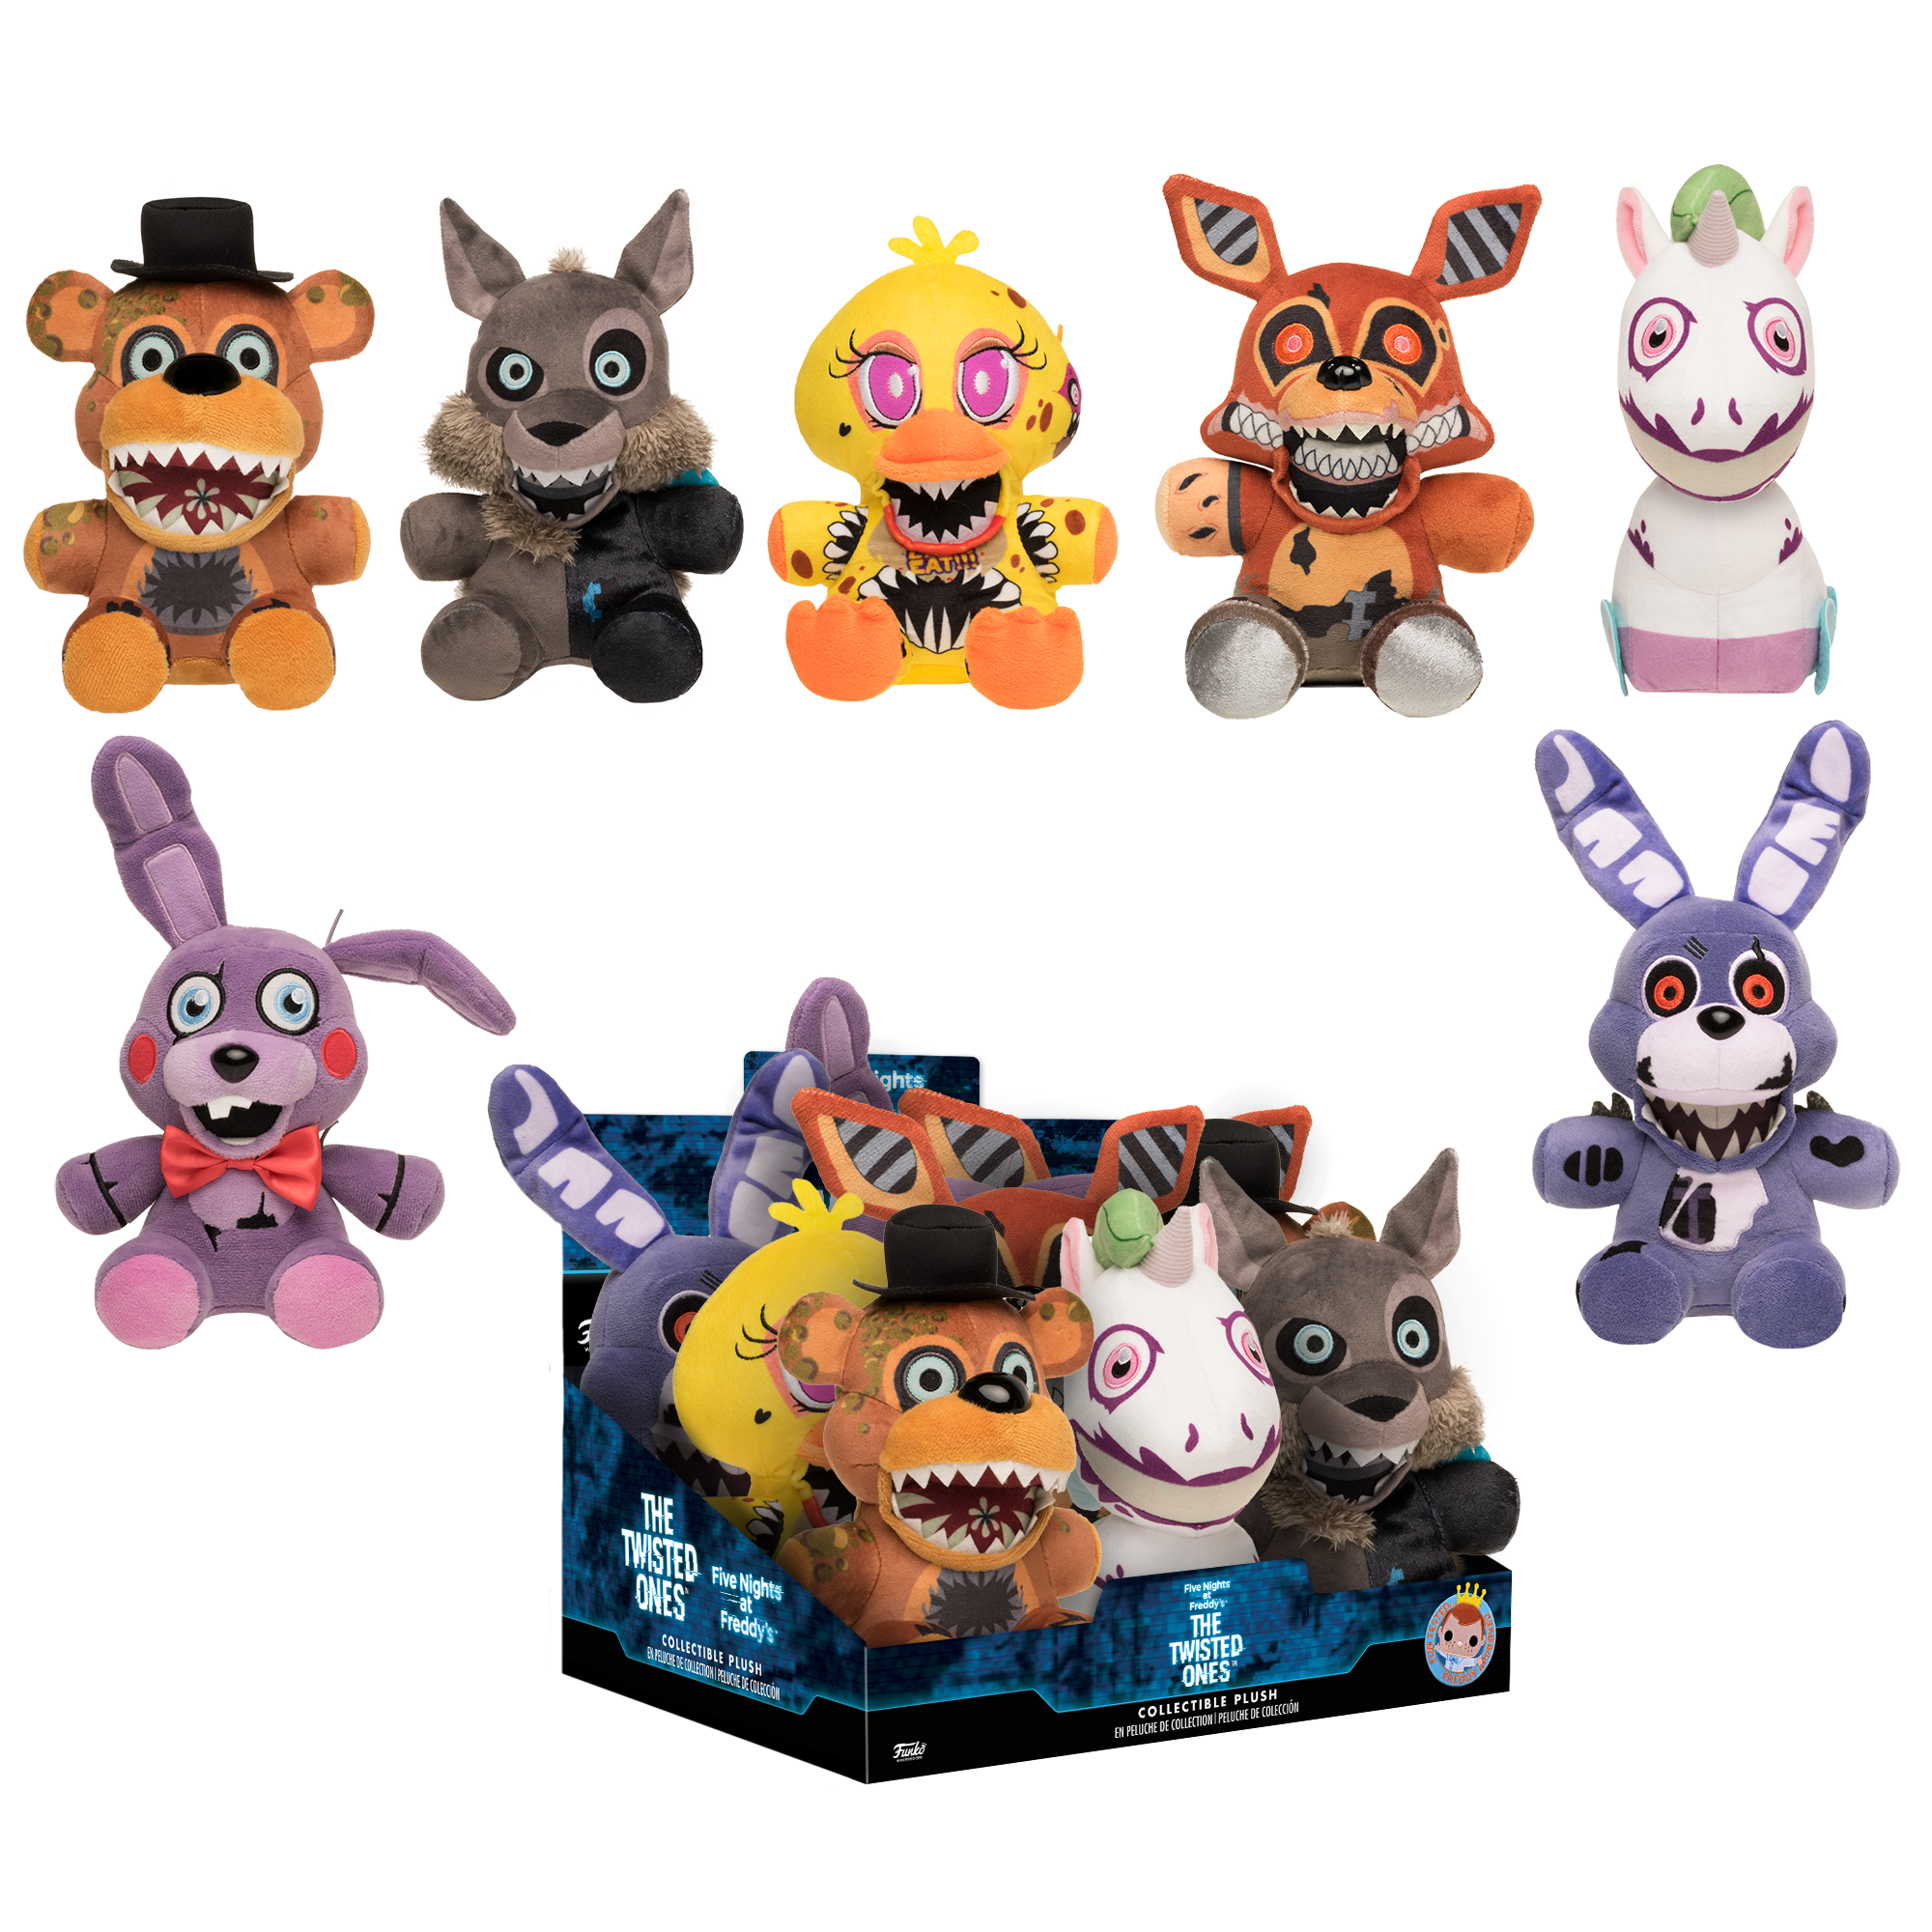 Funko Plush: Five Nights at Freddy's The Twisted Ones Plush | GameStop